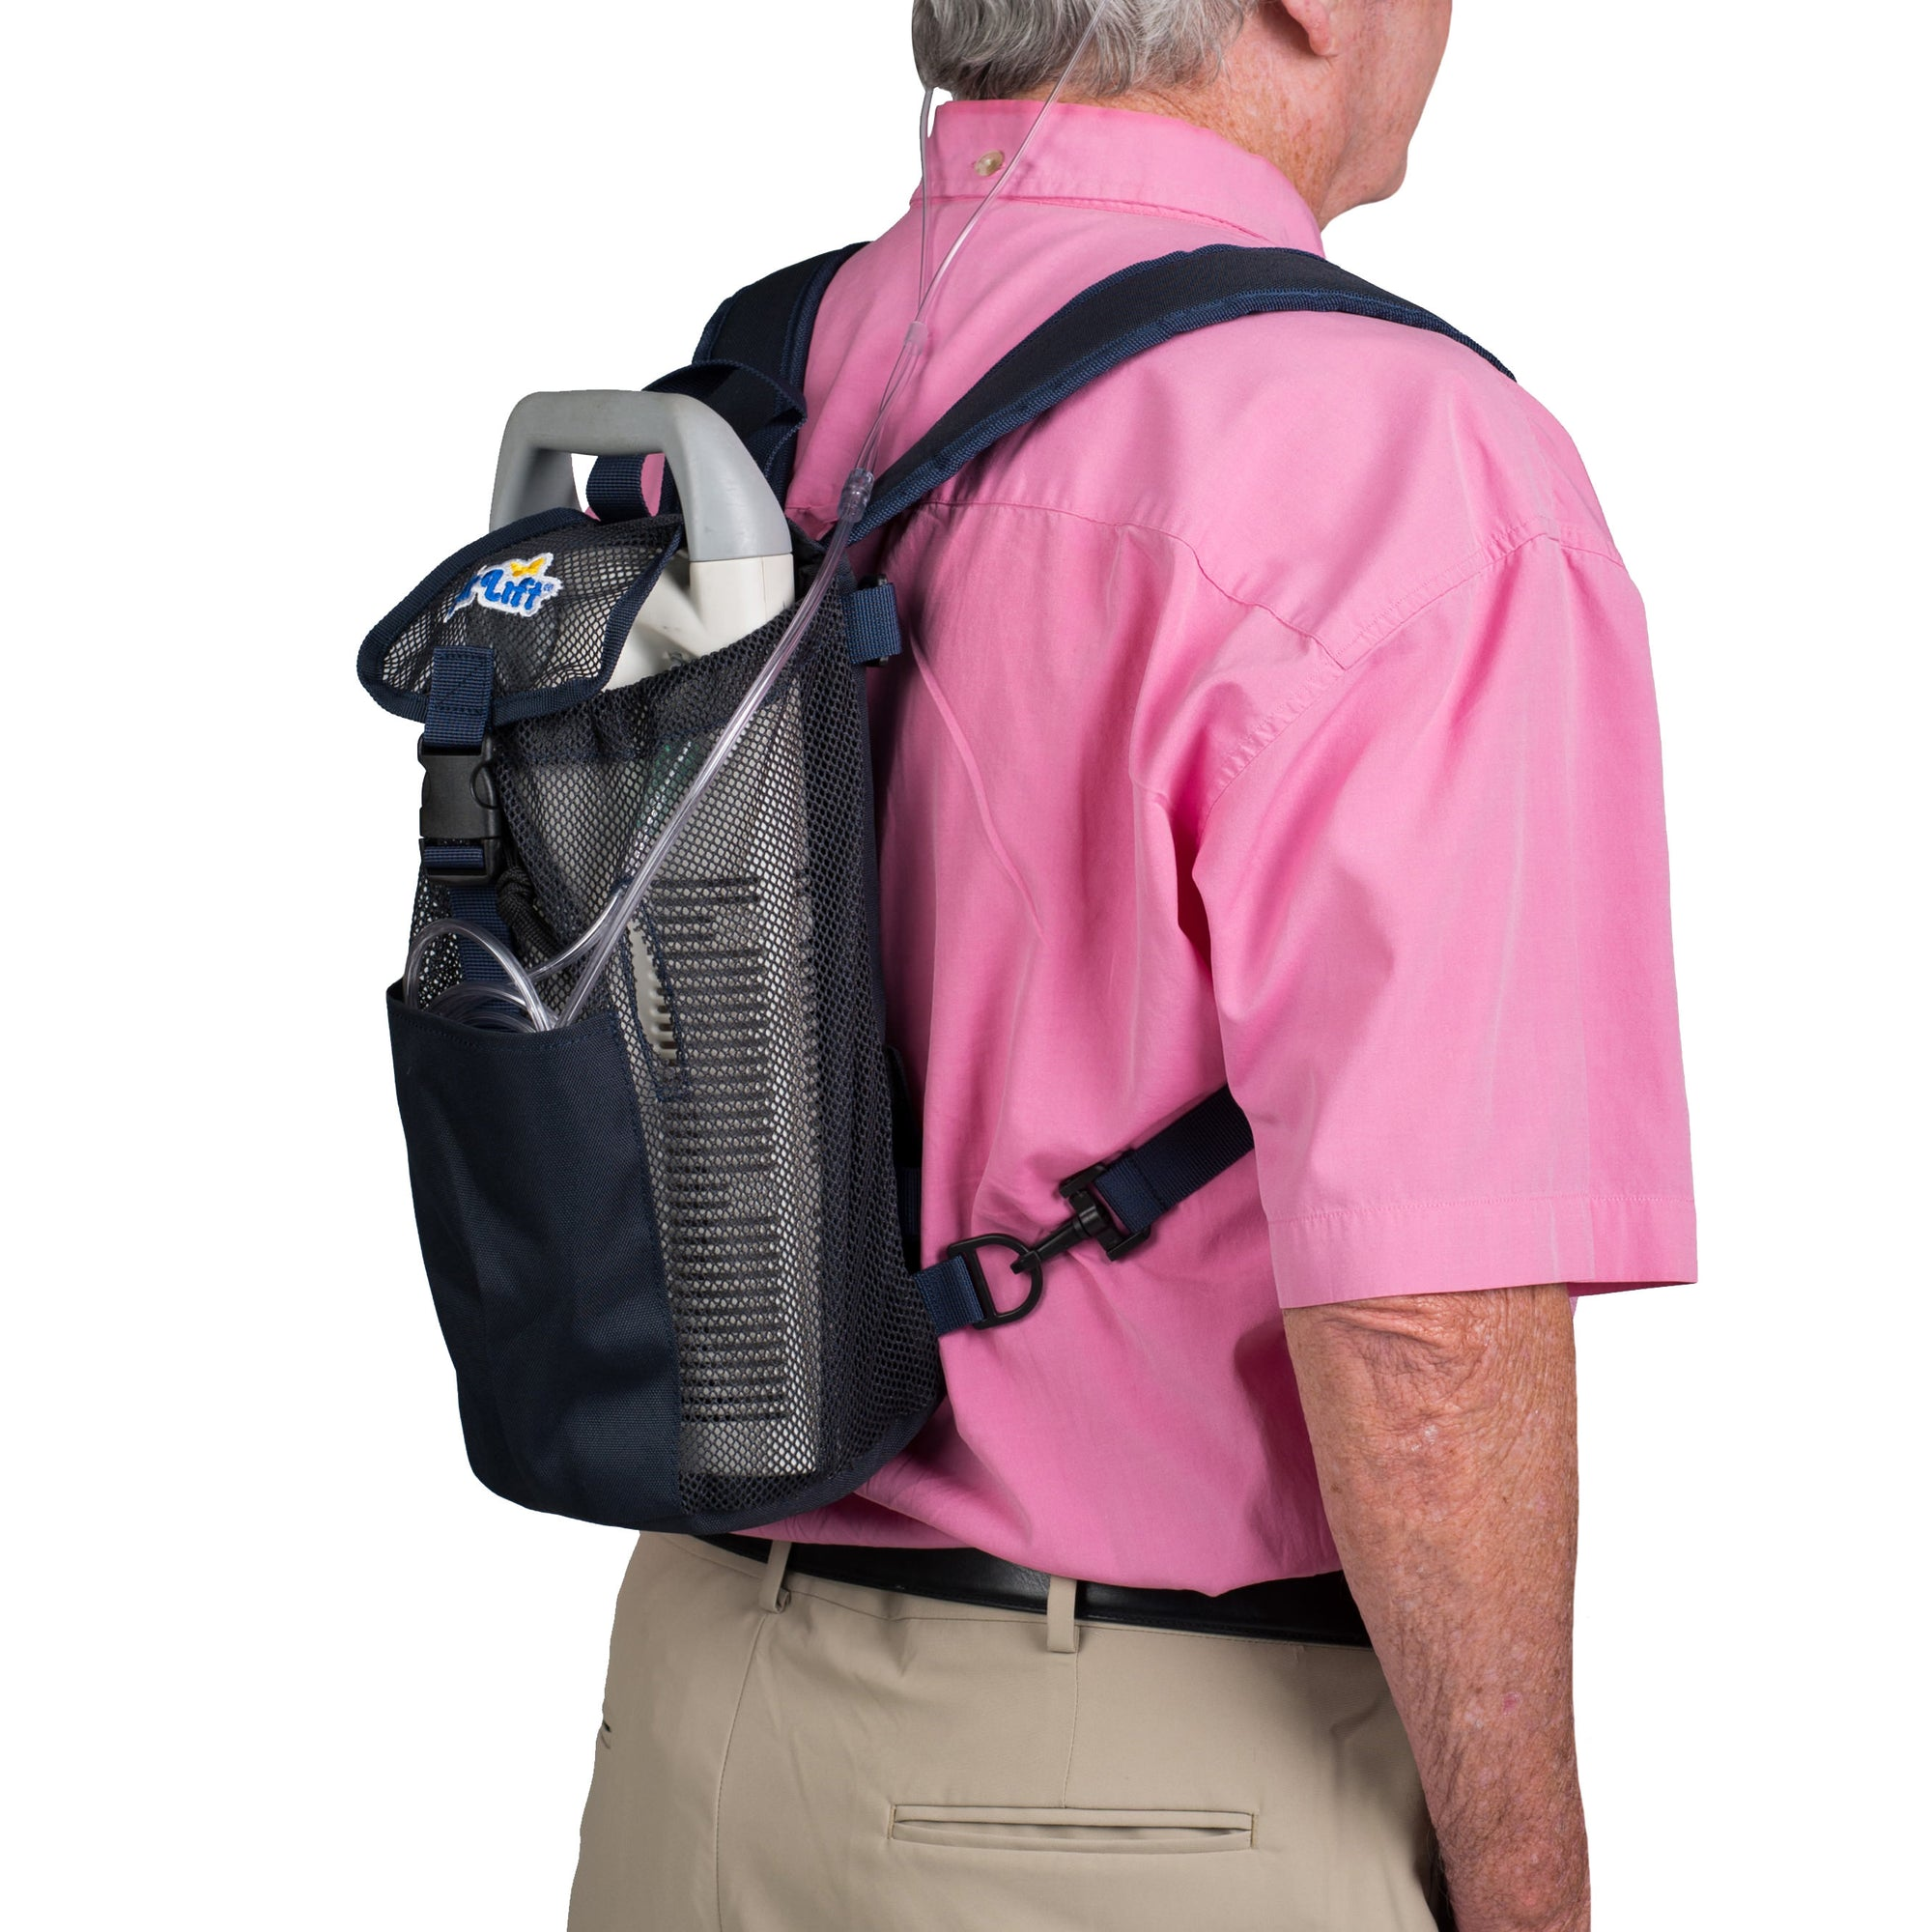 AirLift Small Backpack for Small Liquid Oxygen Portables